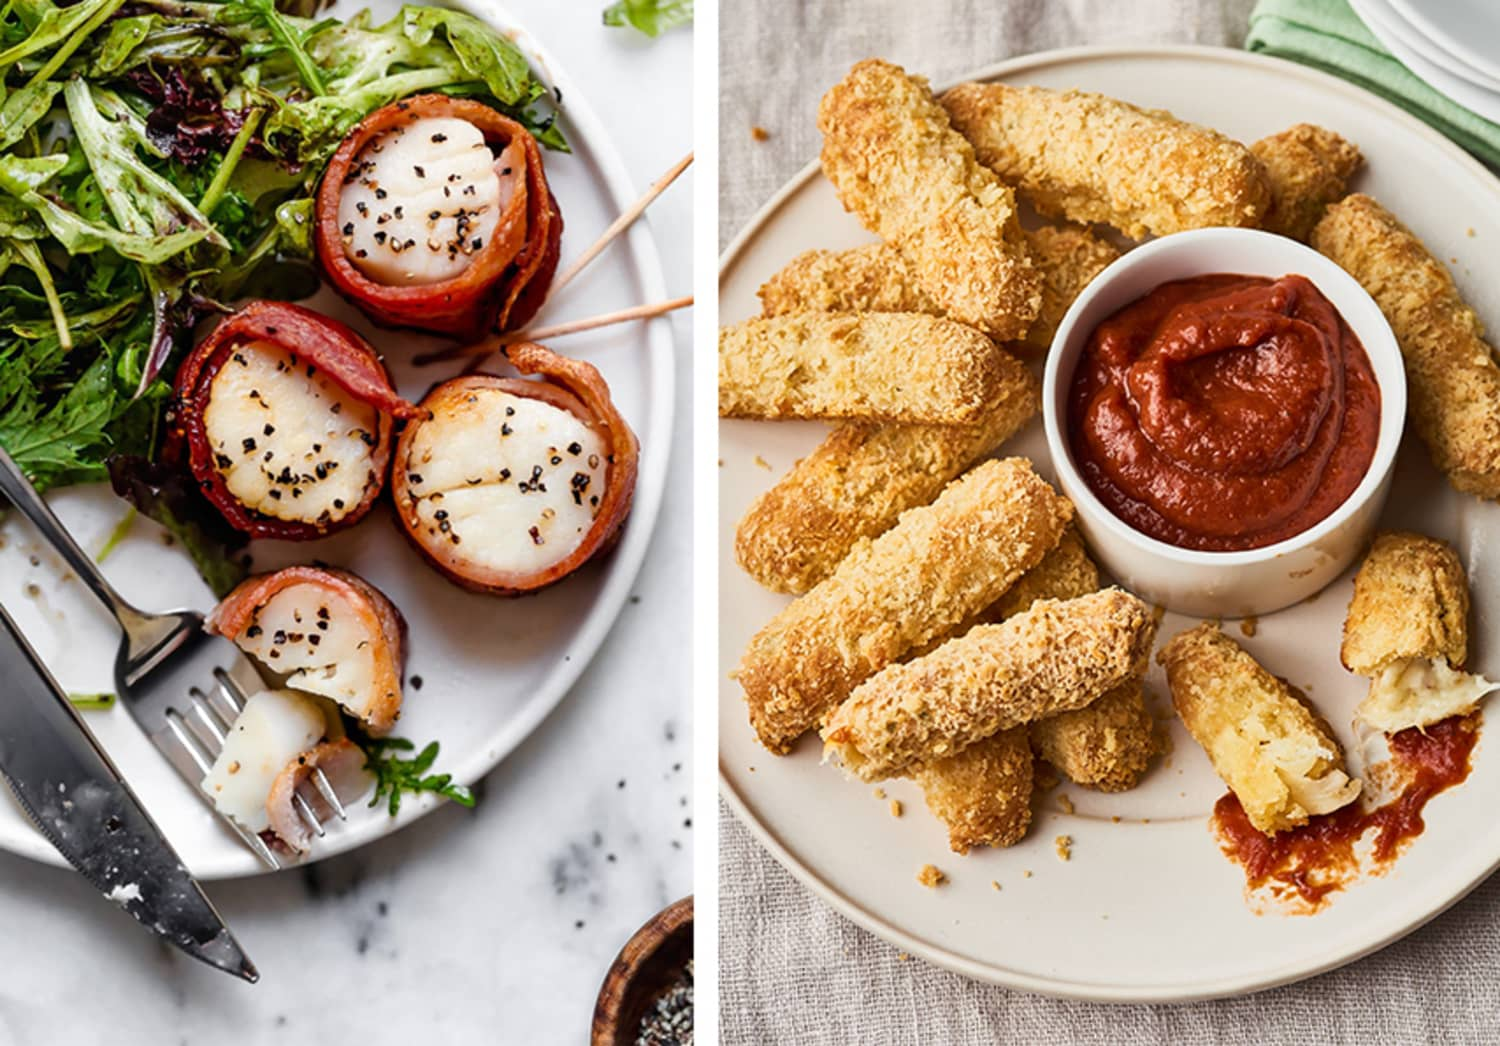 The 10 Best Air Fryer Appetizer Recipes for the Holidays